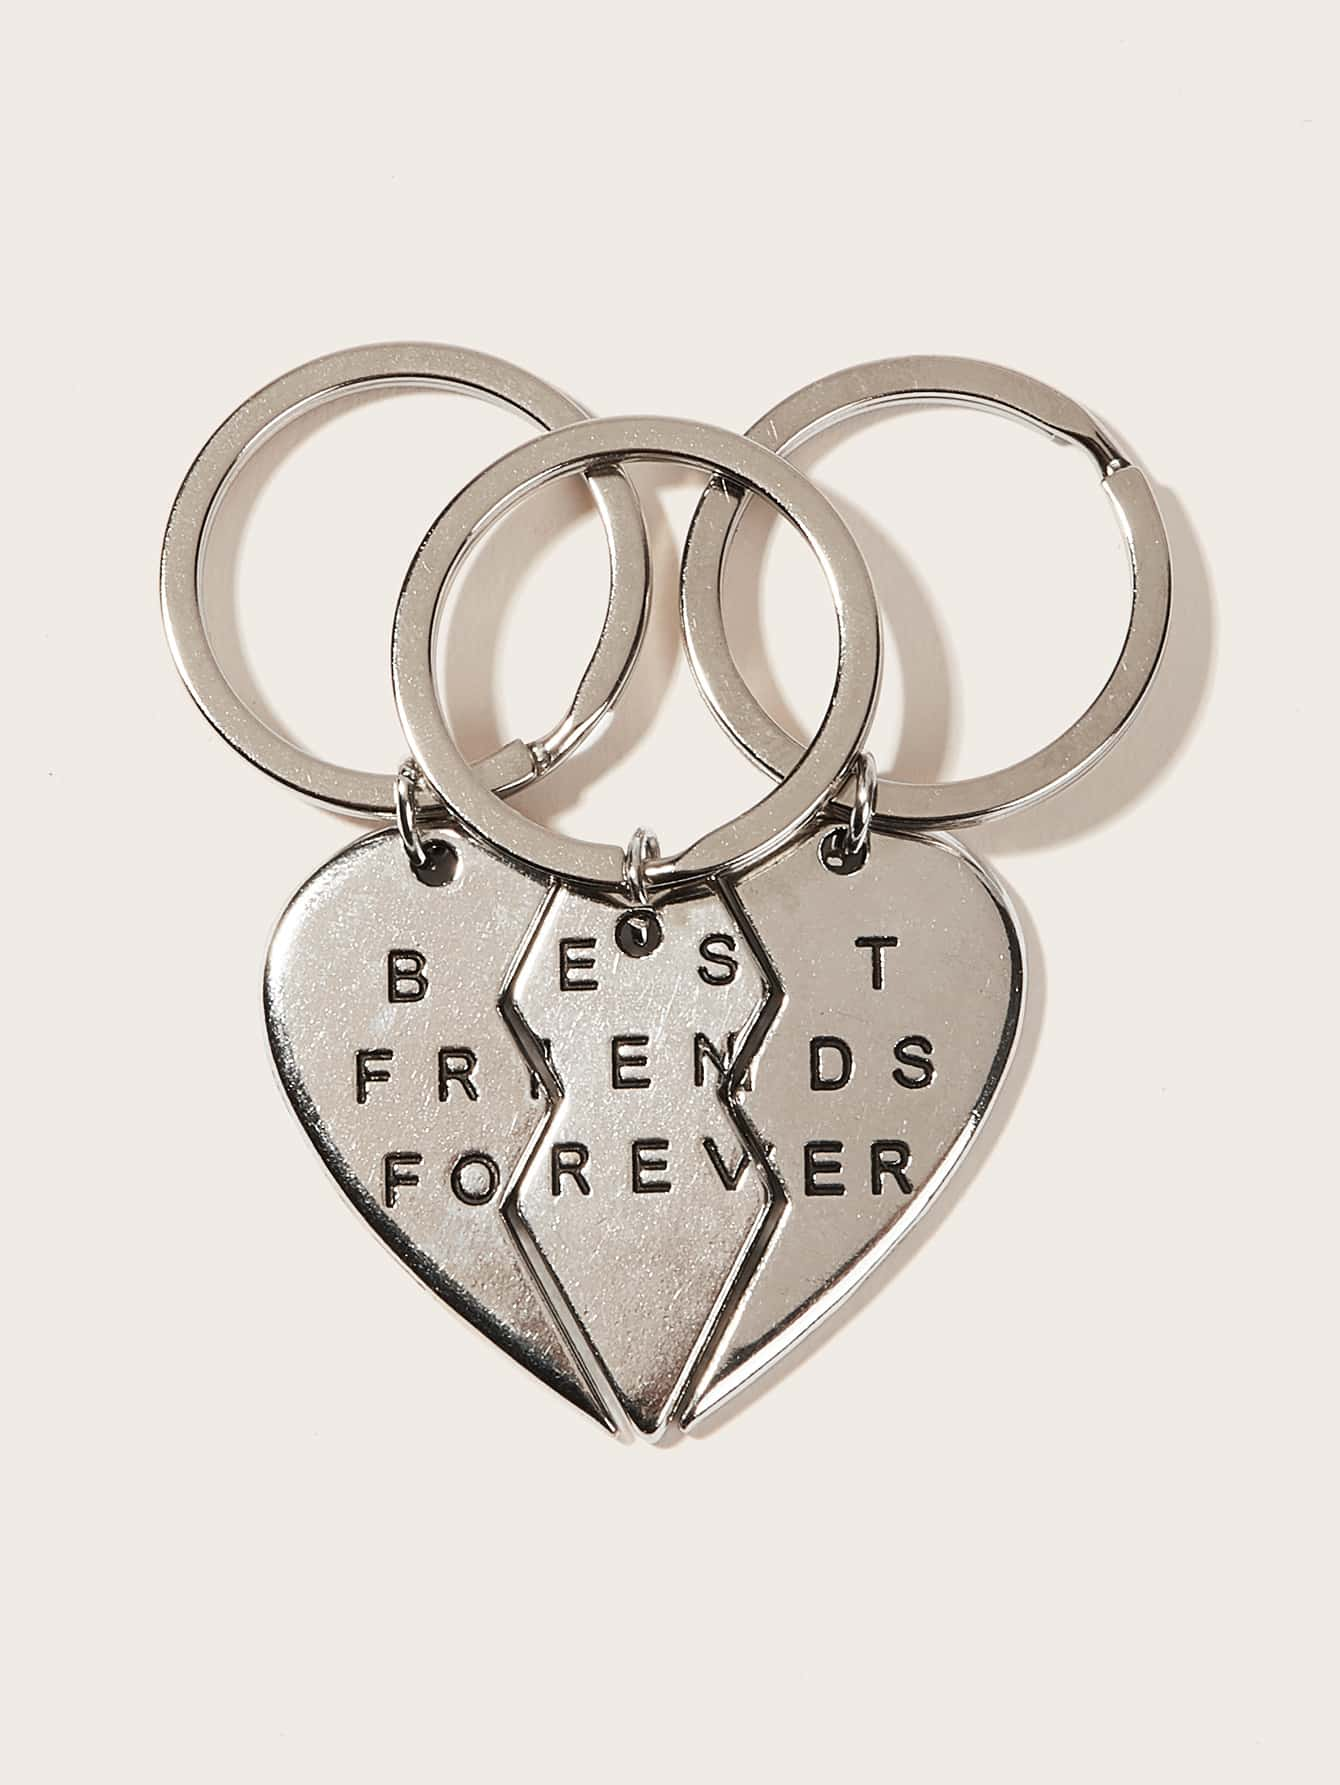 a1c9607272 Letter Pattern Metal Pendant Keychain 3pack, null - shein.com ...